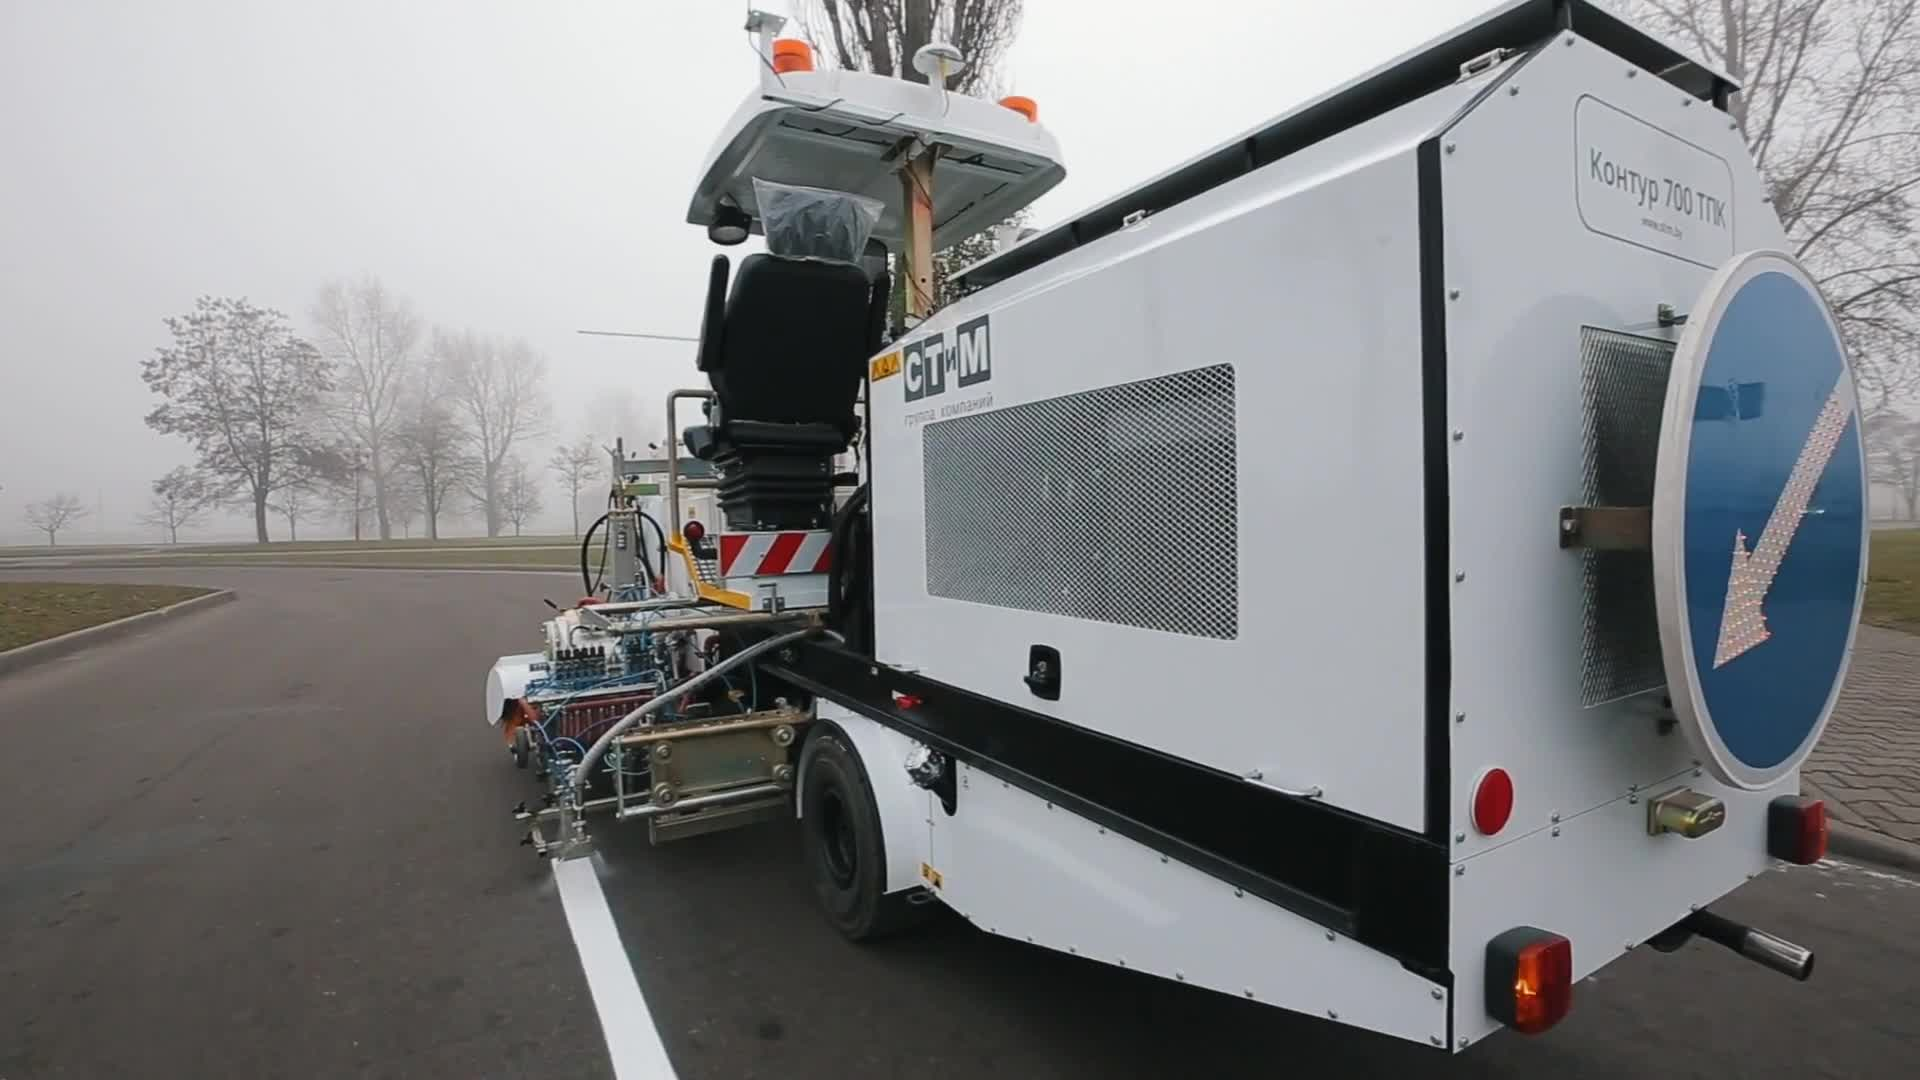 kontur, machine, machinery, marking, road, stim, беларусь, брест, дорога, стим, Self-Driving Road Marking Machine Kontur 700TPK GIFs